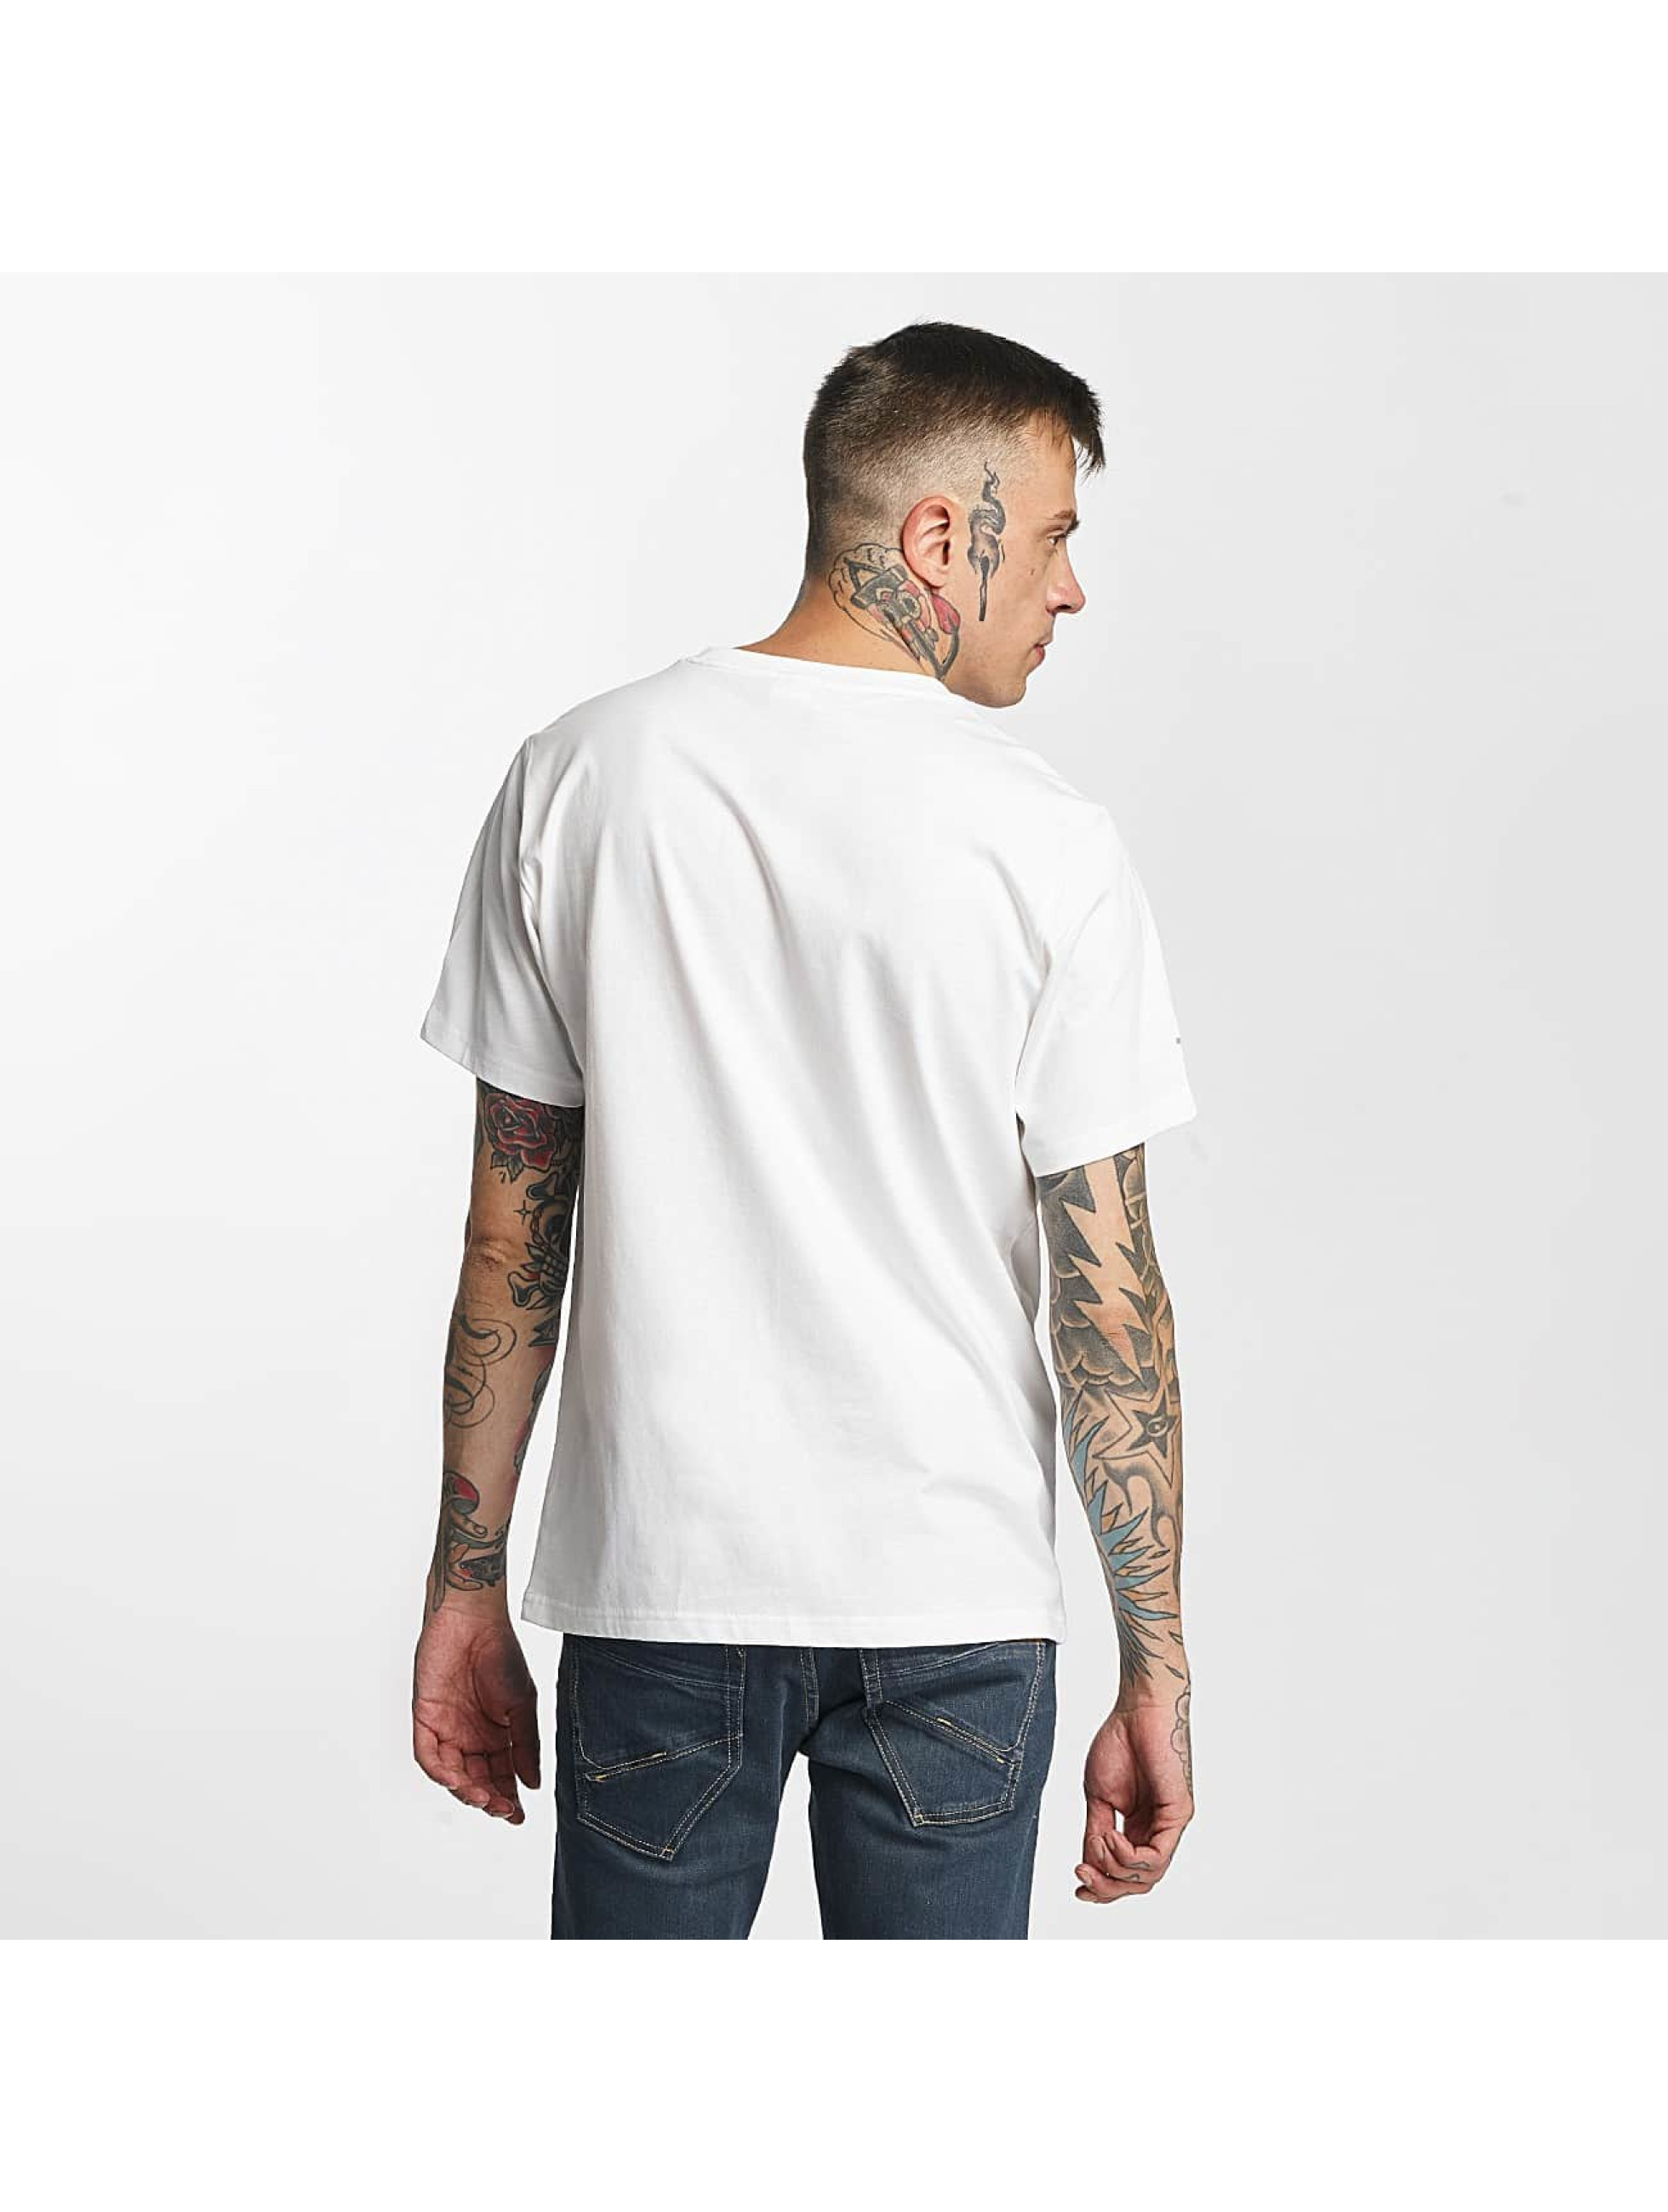 New Balance T-Shirt Athletic Main LG white